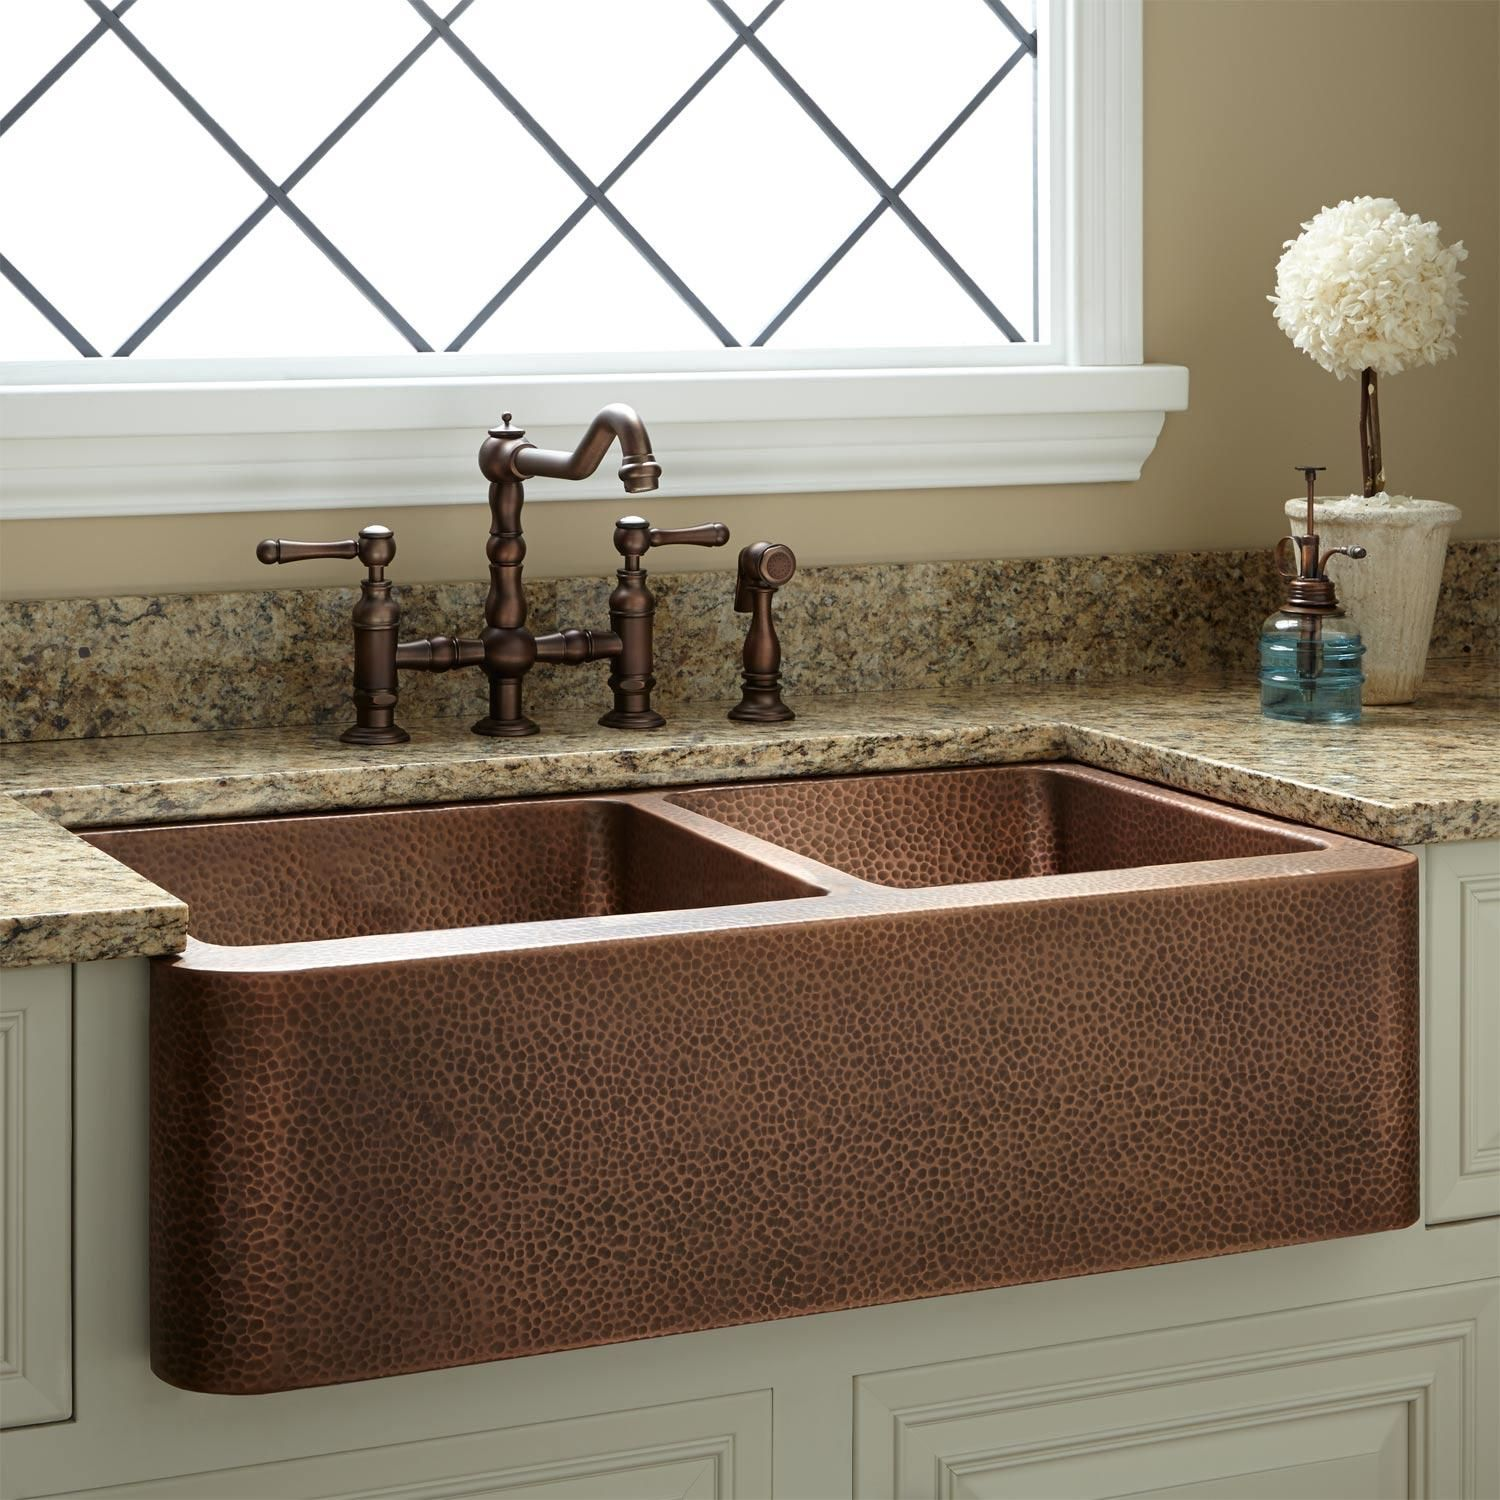 33 Hammered Copper 60 40 Offset Double Bowl Farmhouse Sink In